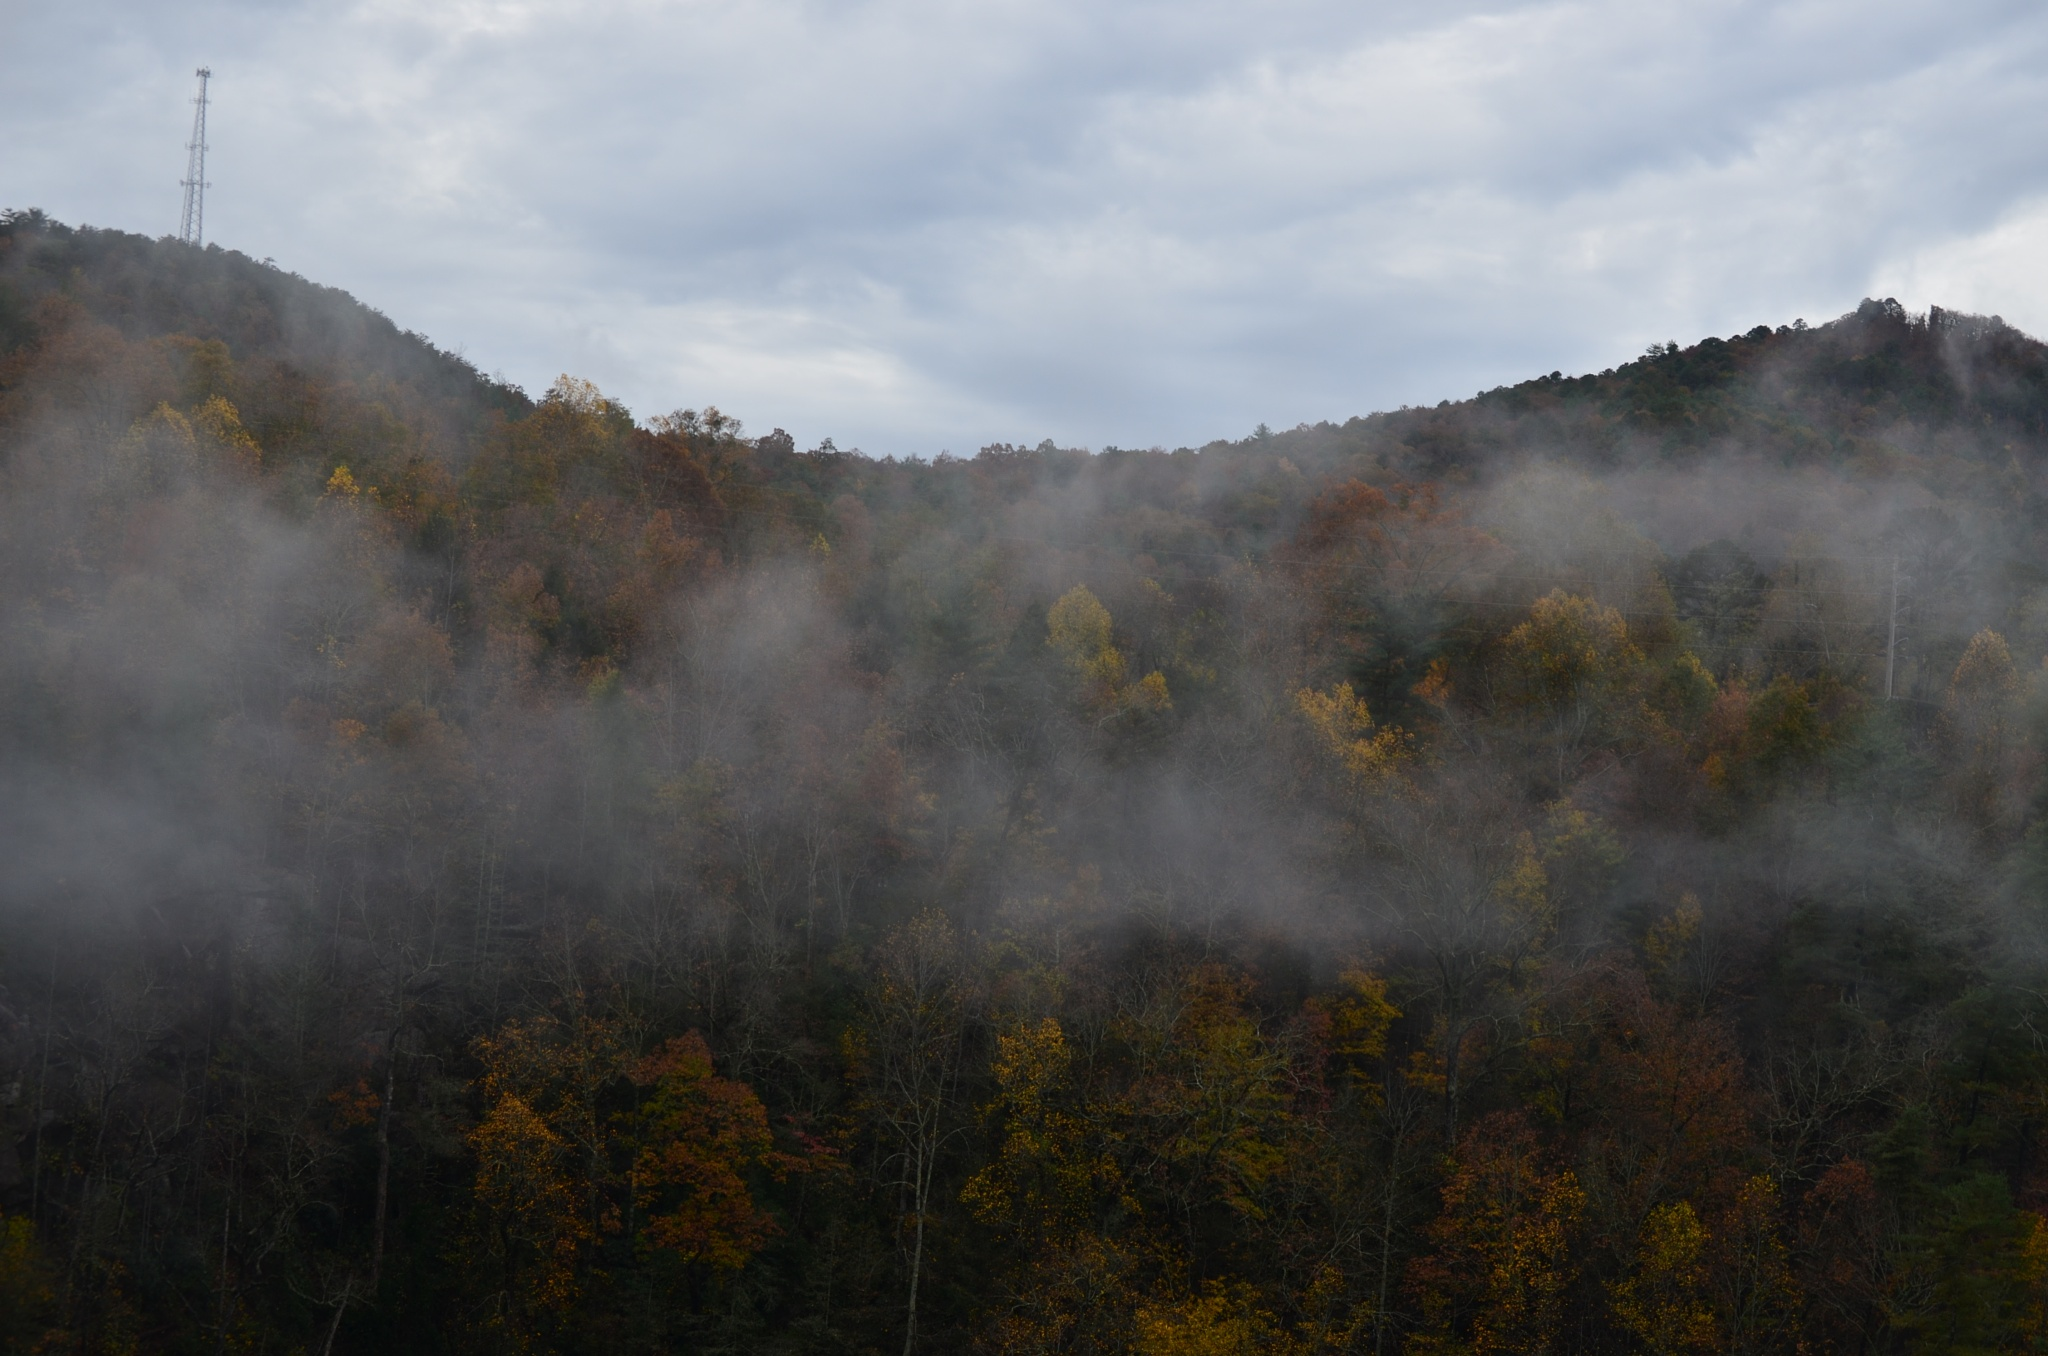 Fog in the mountains by Marcy Cox